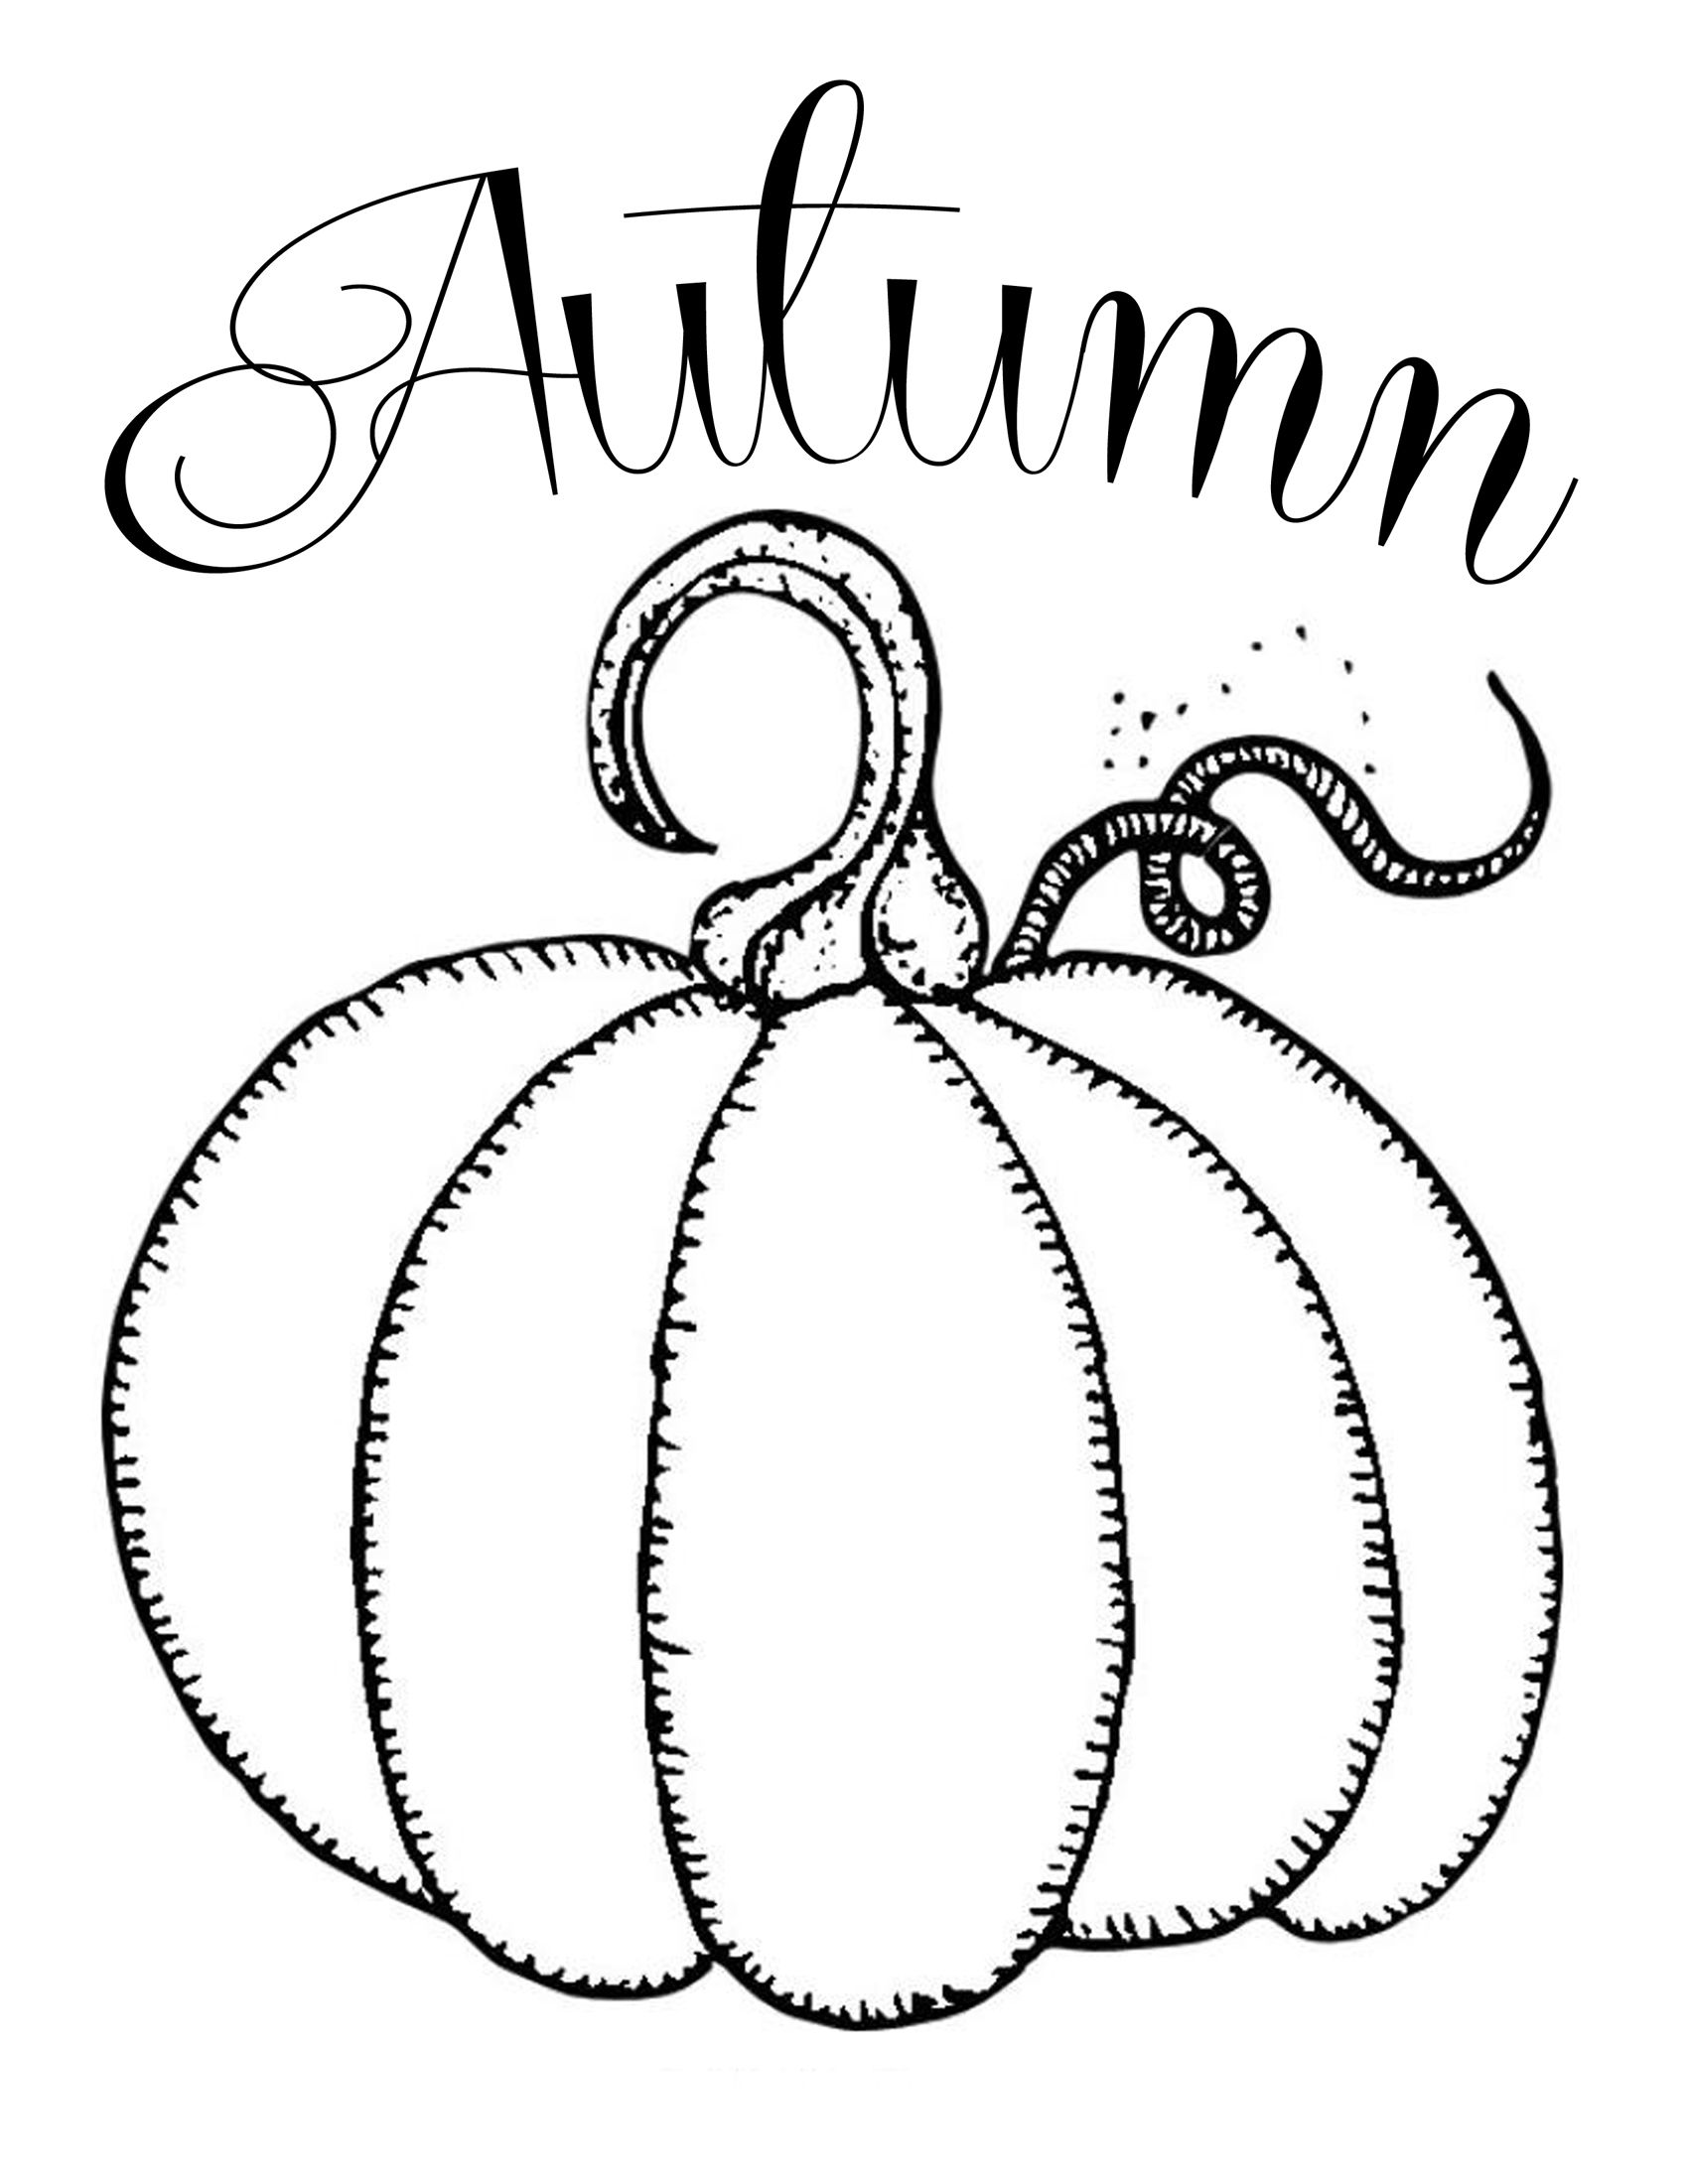 Autumn-Pumpkin.jpg 1,700×2,200 pixels | Crafty | Pinterest ...